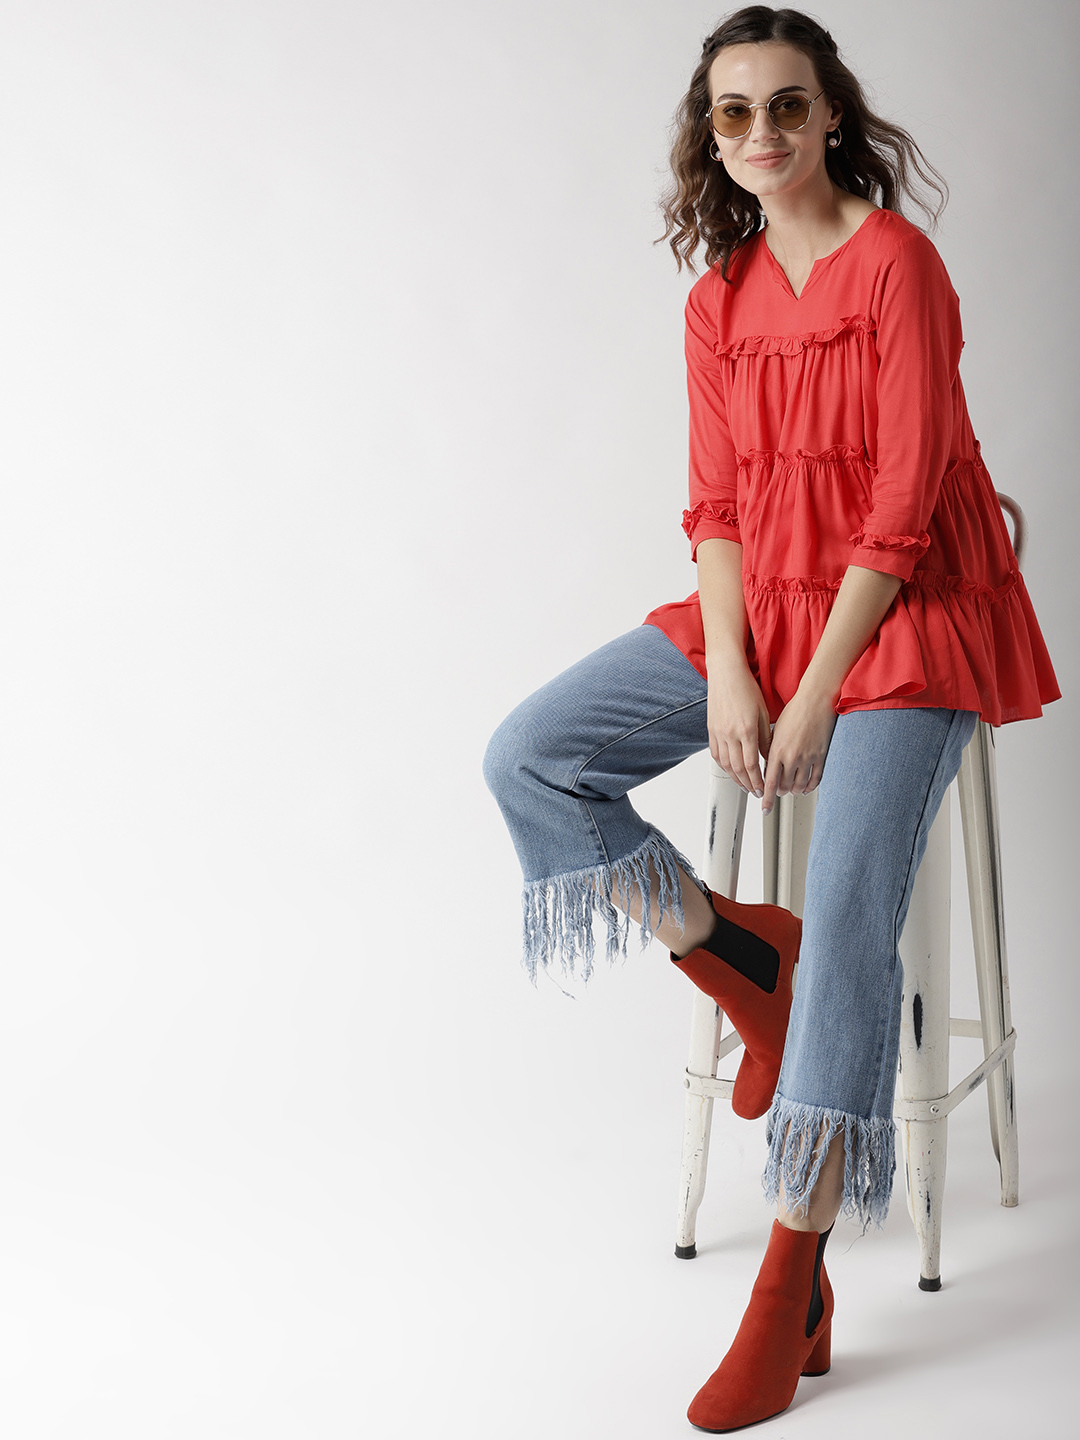 32-types-of-tops-Women-Coral-Red-Solid-Tiered-Top